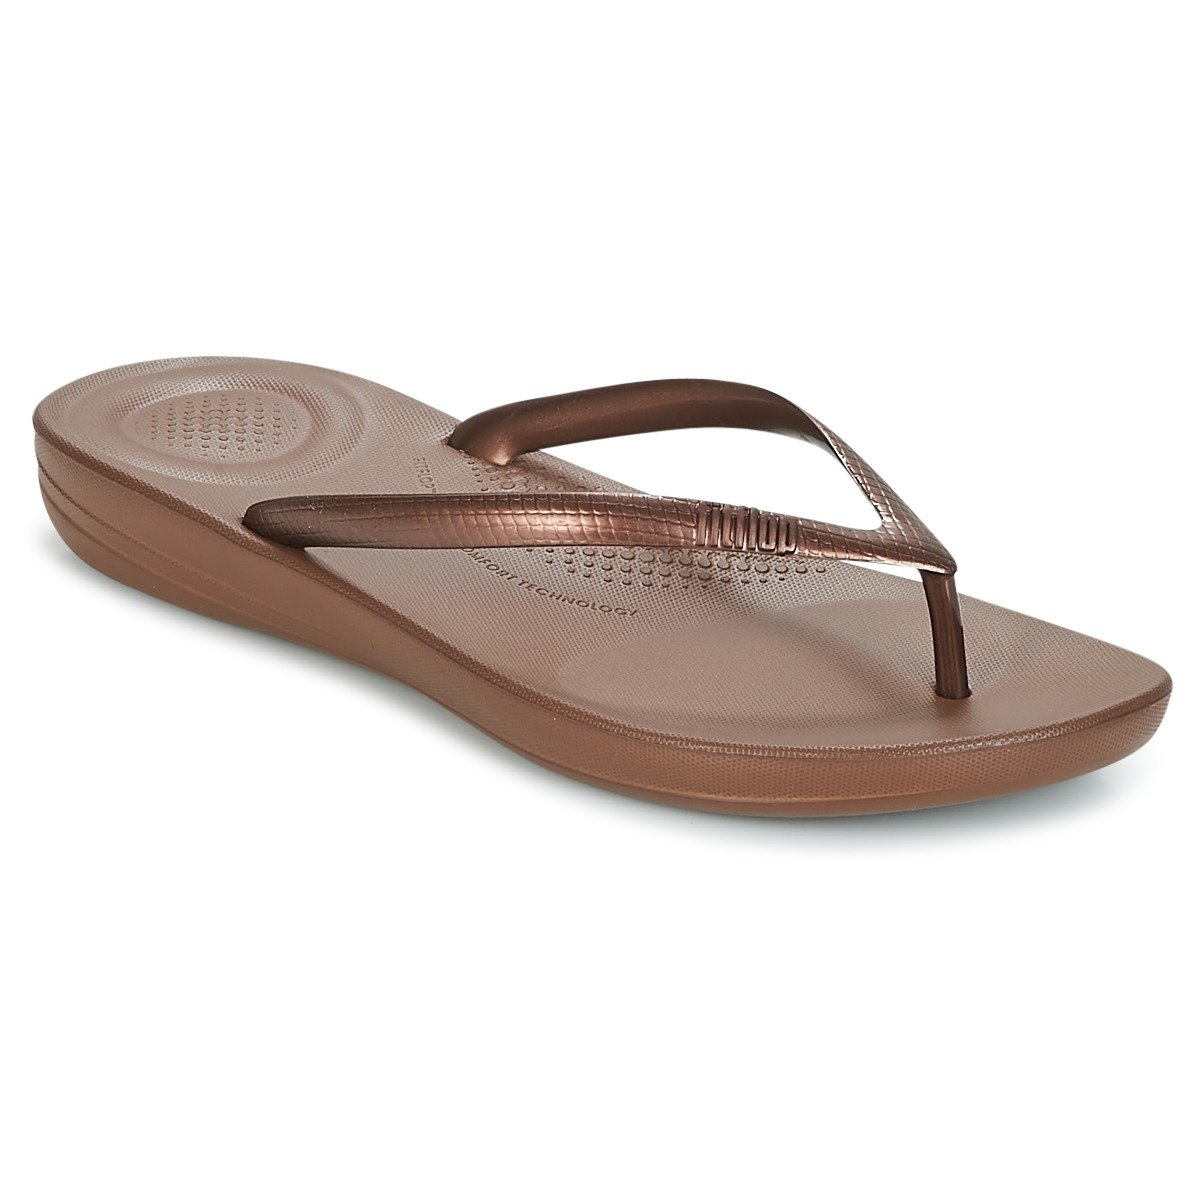 59d502be4 Fitflop Women Iqushion Ergonomic Flip-Flops Toe Thong Sandals   Amazon.co.uk  Shoes   Bags